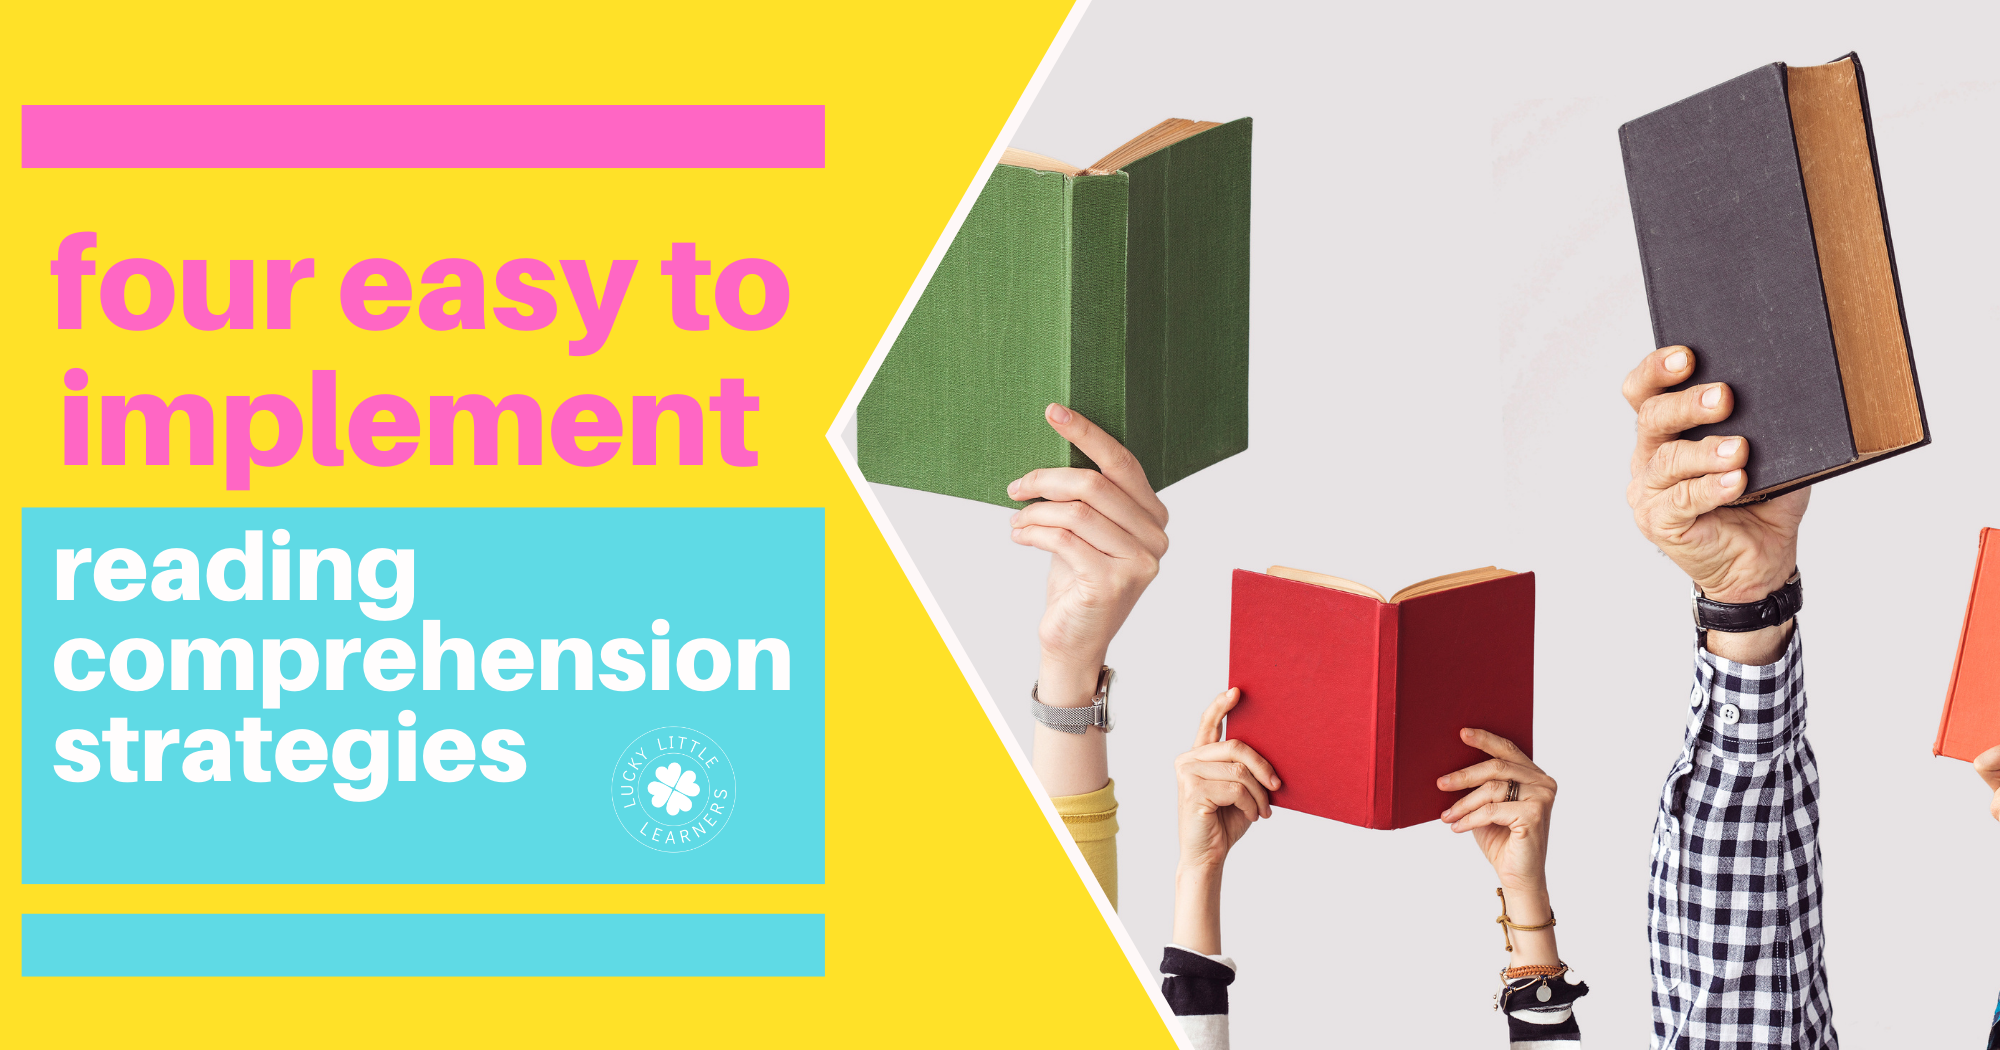 Four Easy to Implement Reading Comprehension Strategies